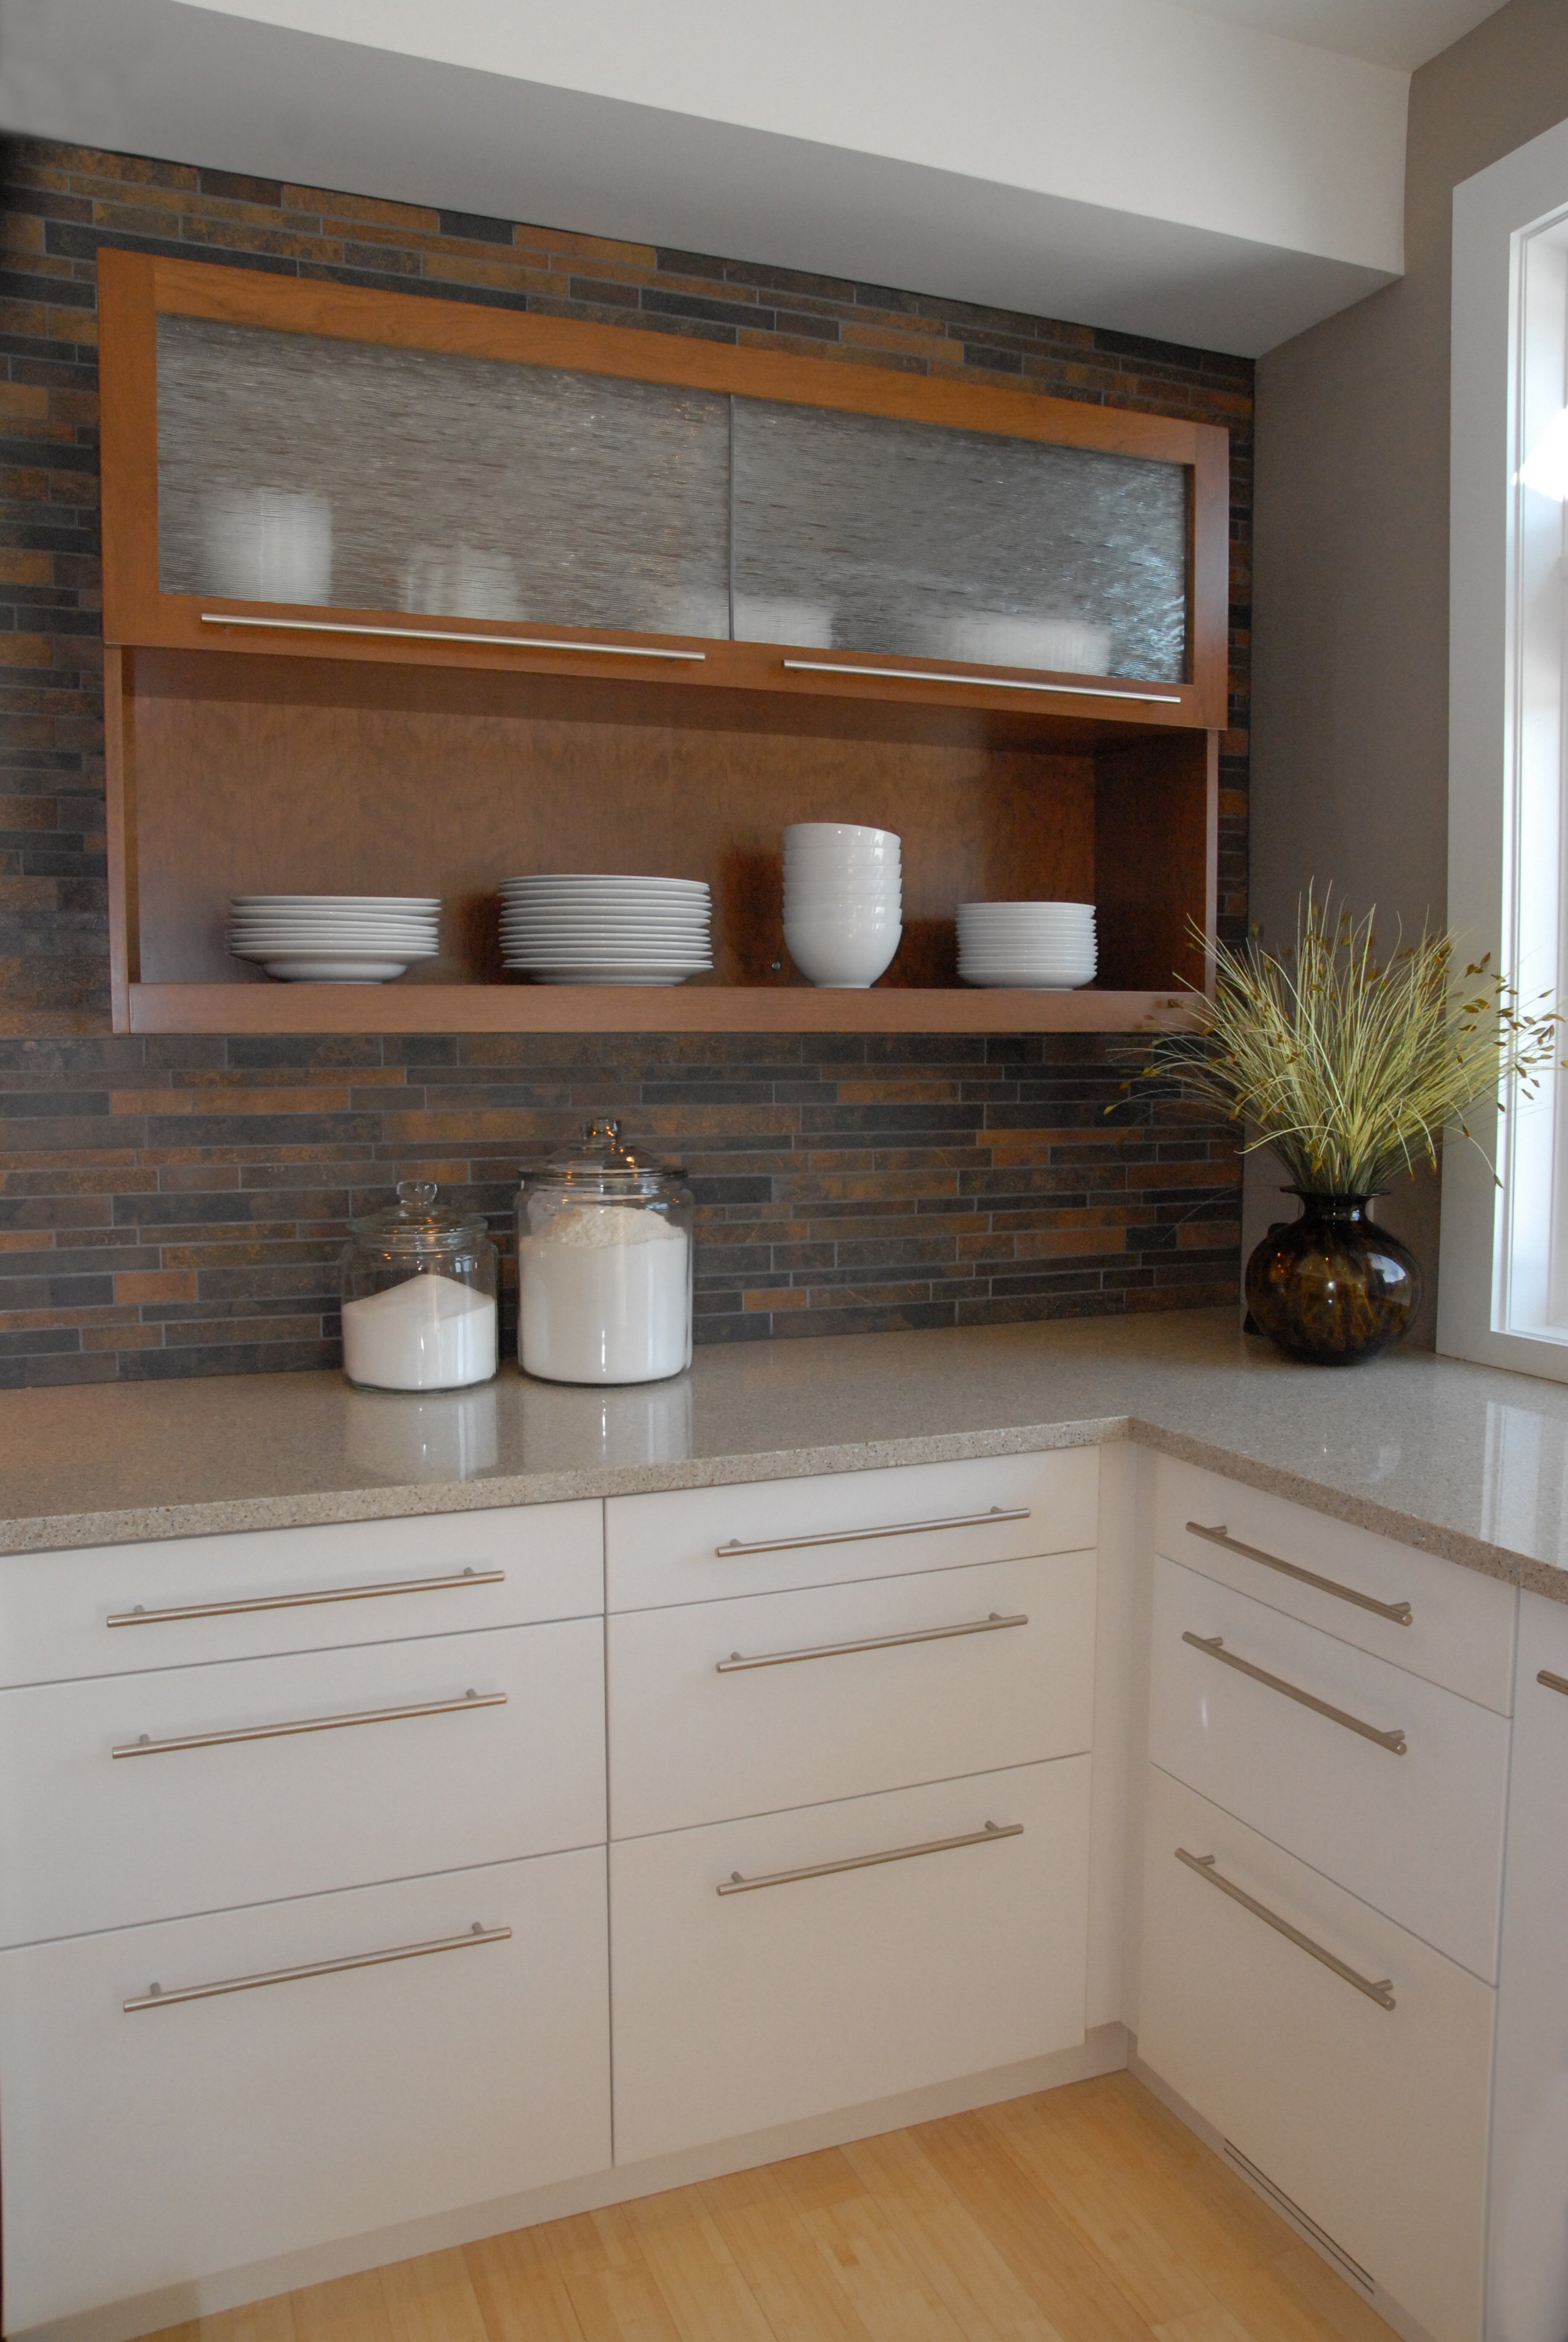 Kitchen Island Cabinet D2_4_after3